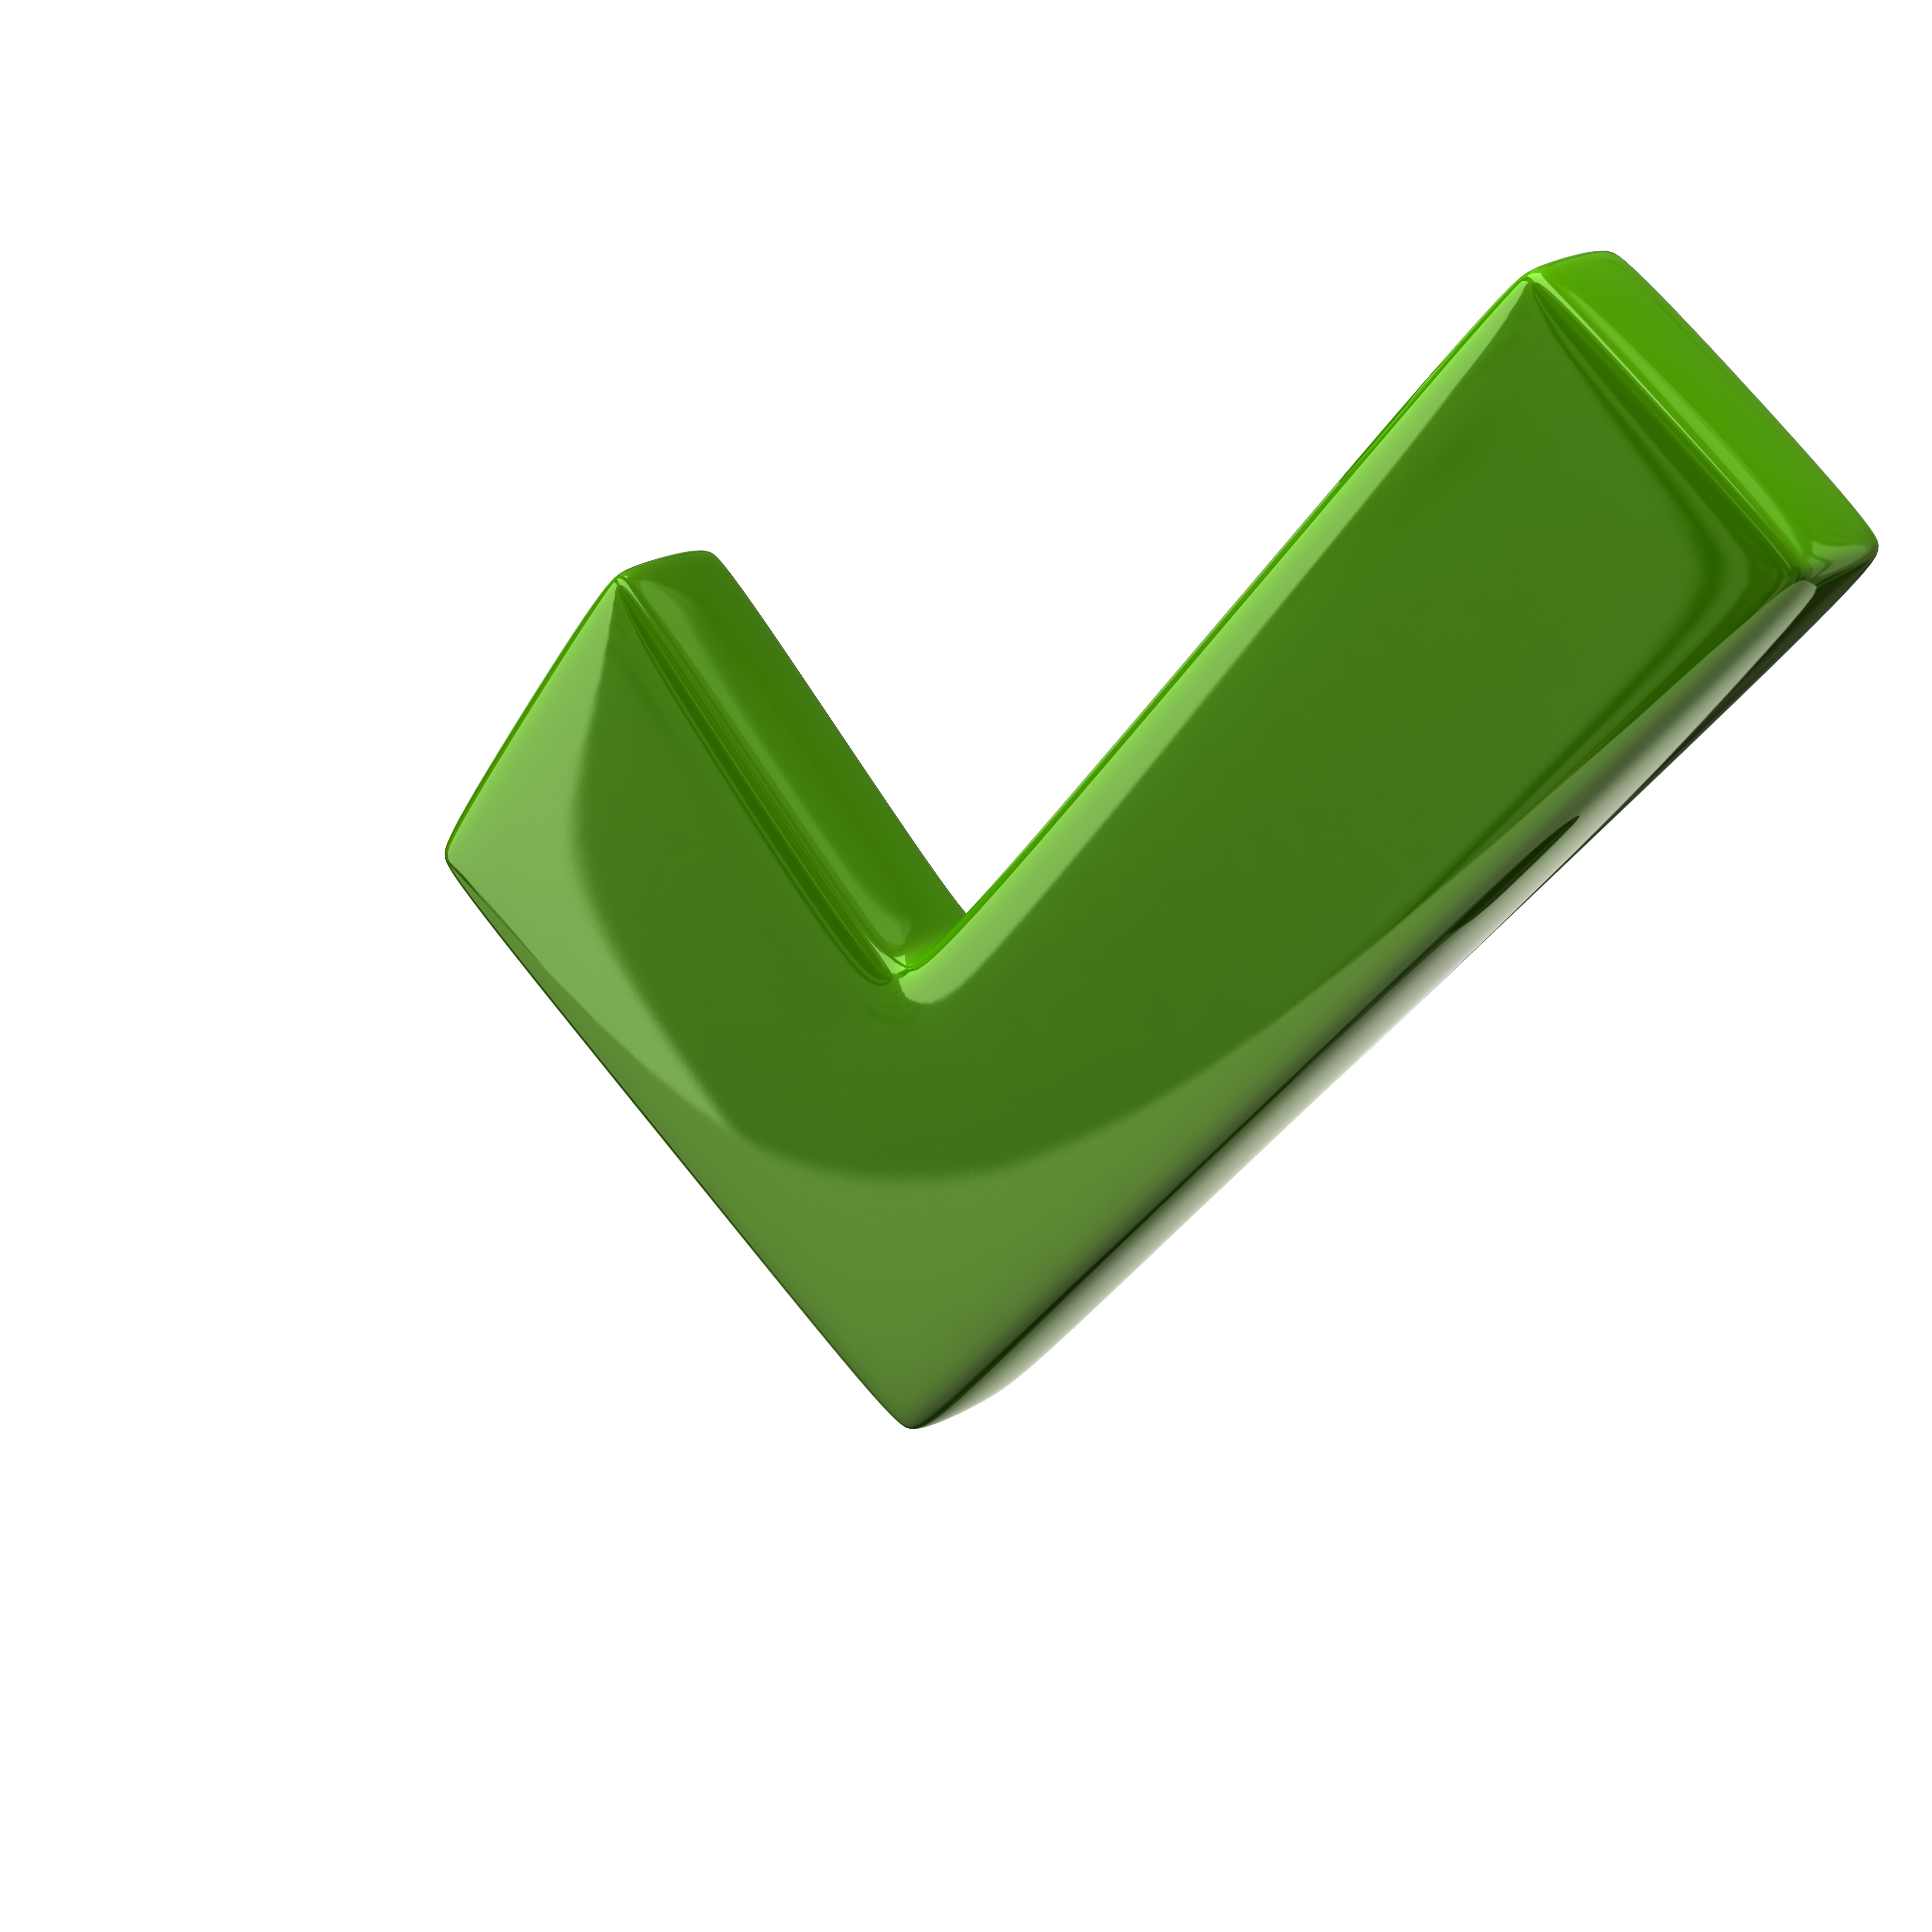 Transparent check large green. Ds image checkmark format